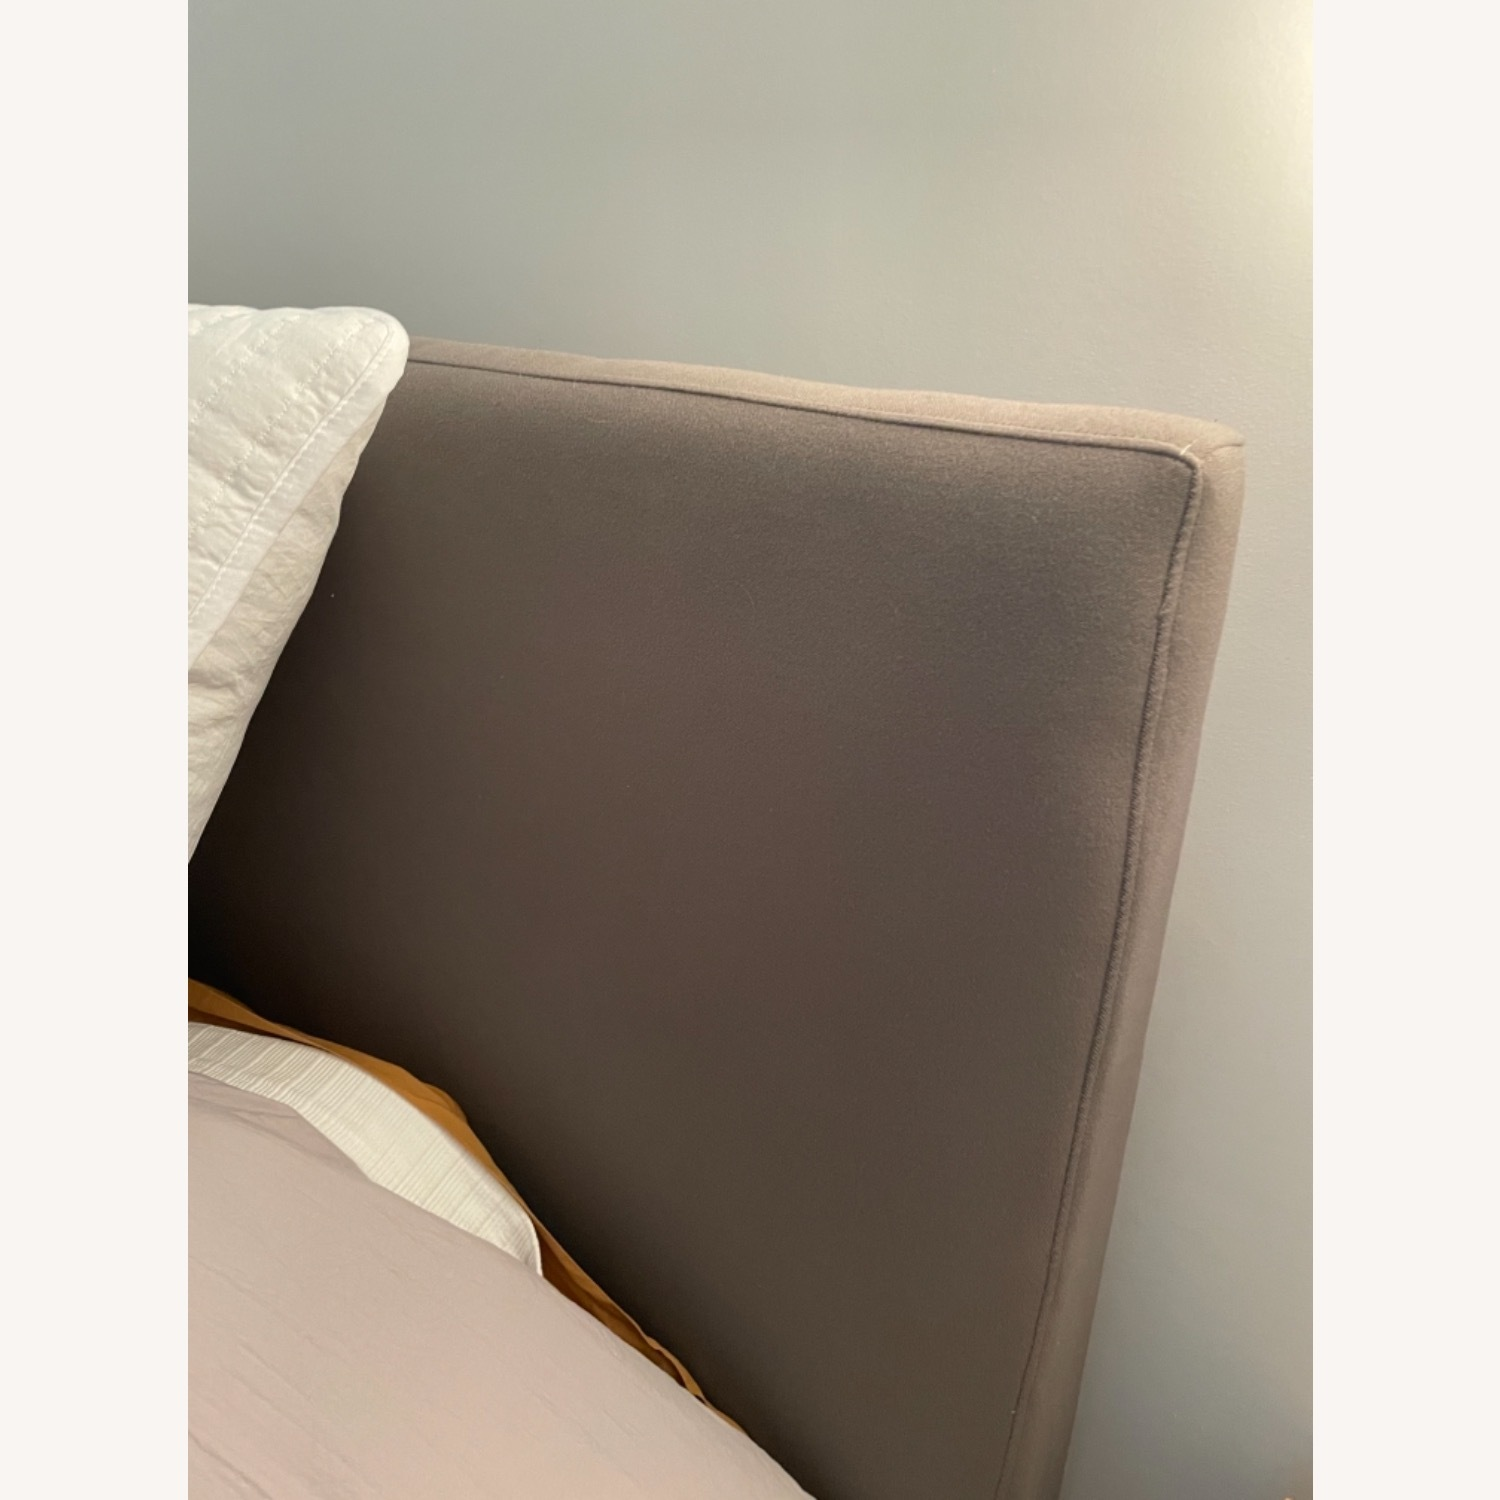 Room and Board Wyatt King Bed Frame - image-3